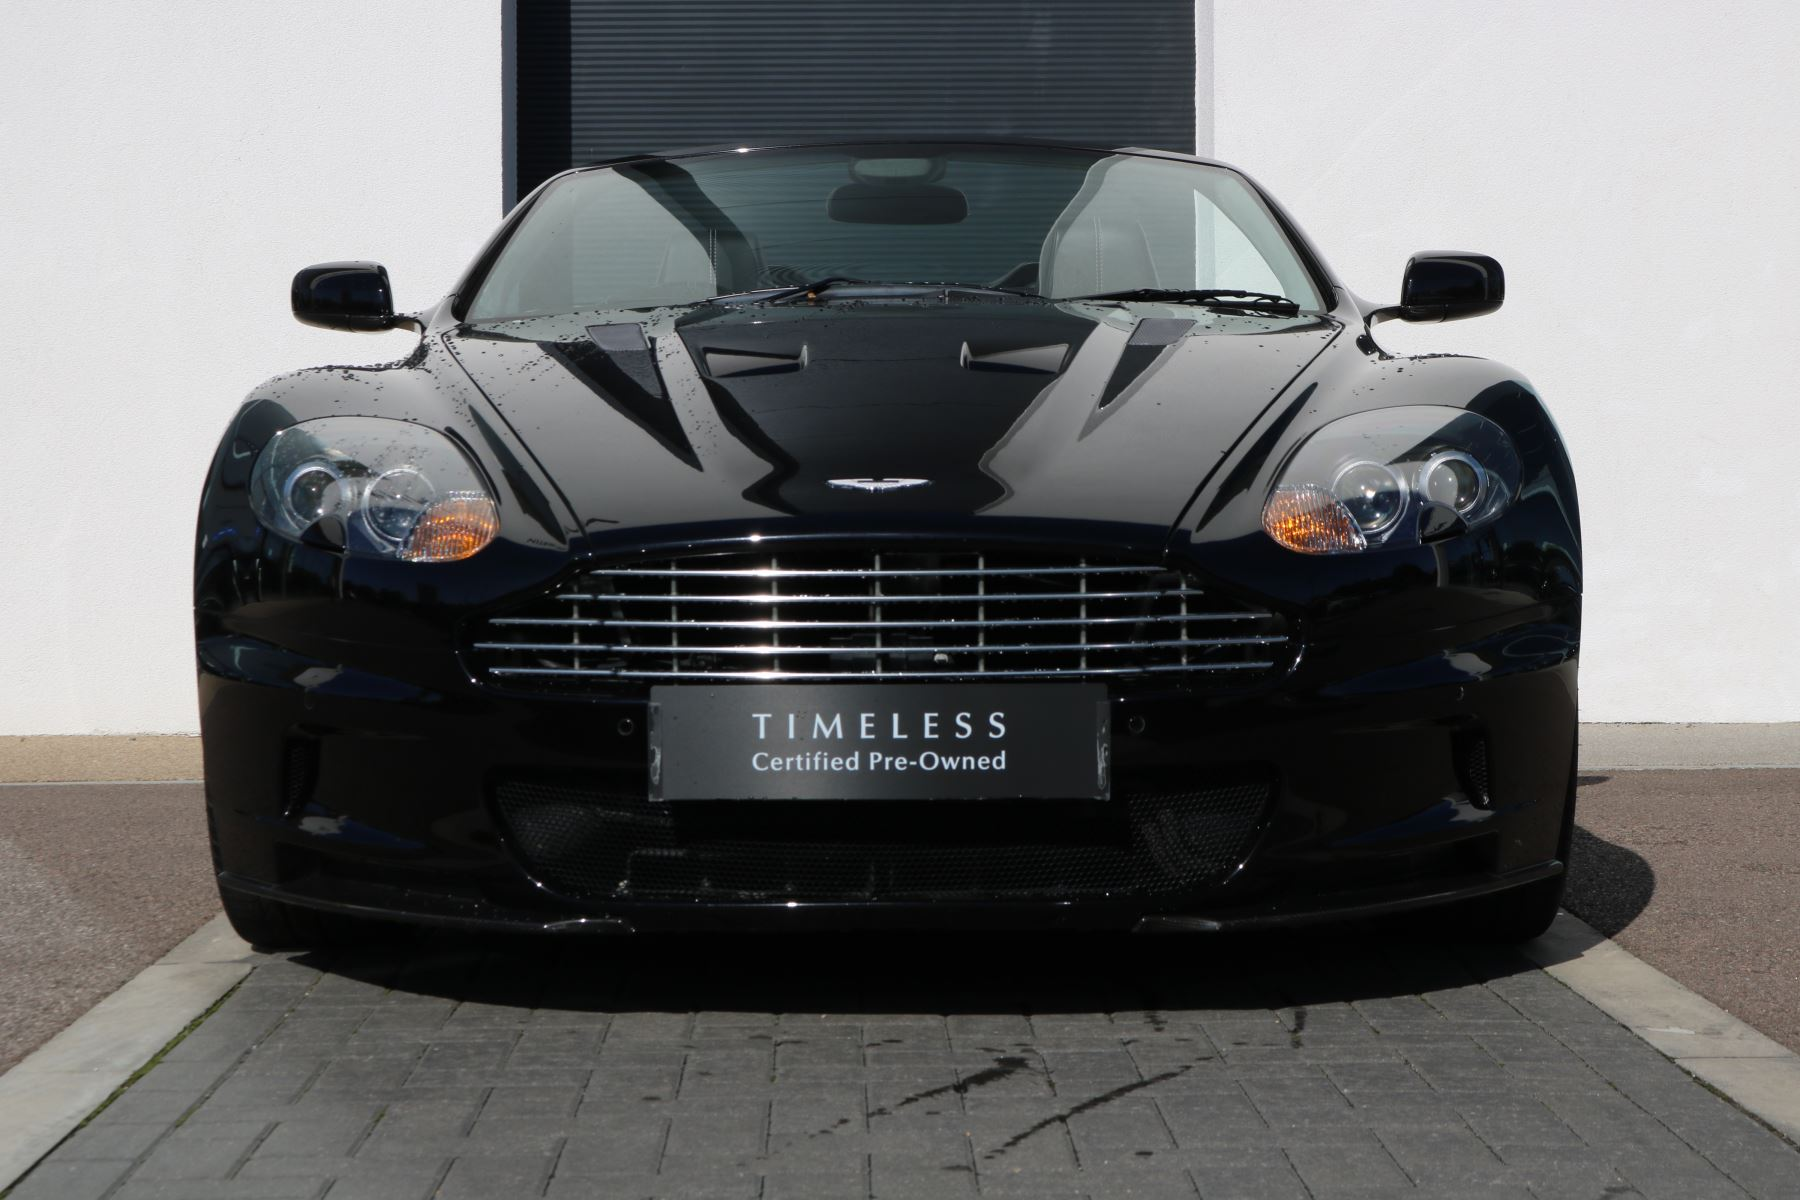 Aston Martin DBS DBS V12 Volante Touchtronic Bang and Olufsen Full Service History  5.9 Automatic 2 door Convertible